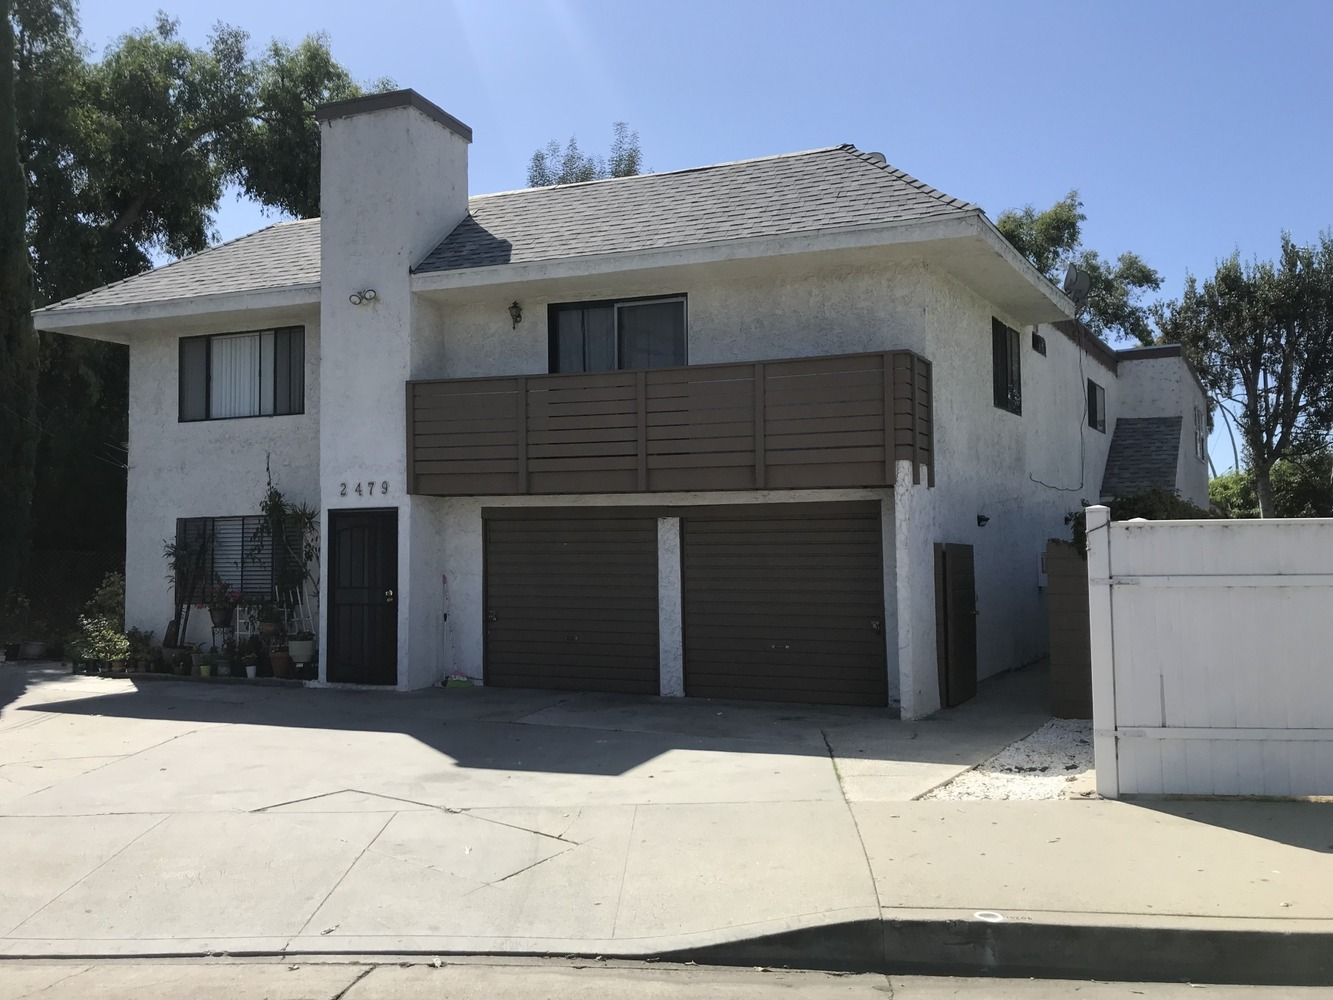 2479 Barry Avenue Los Angeles, CA 90064